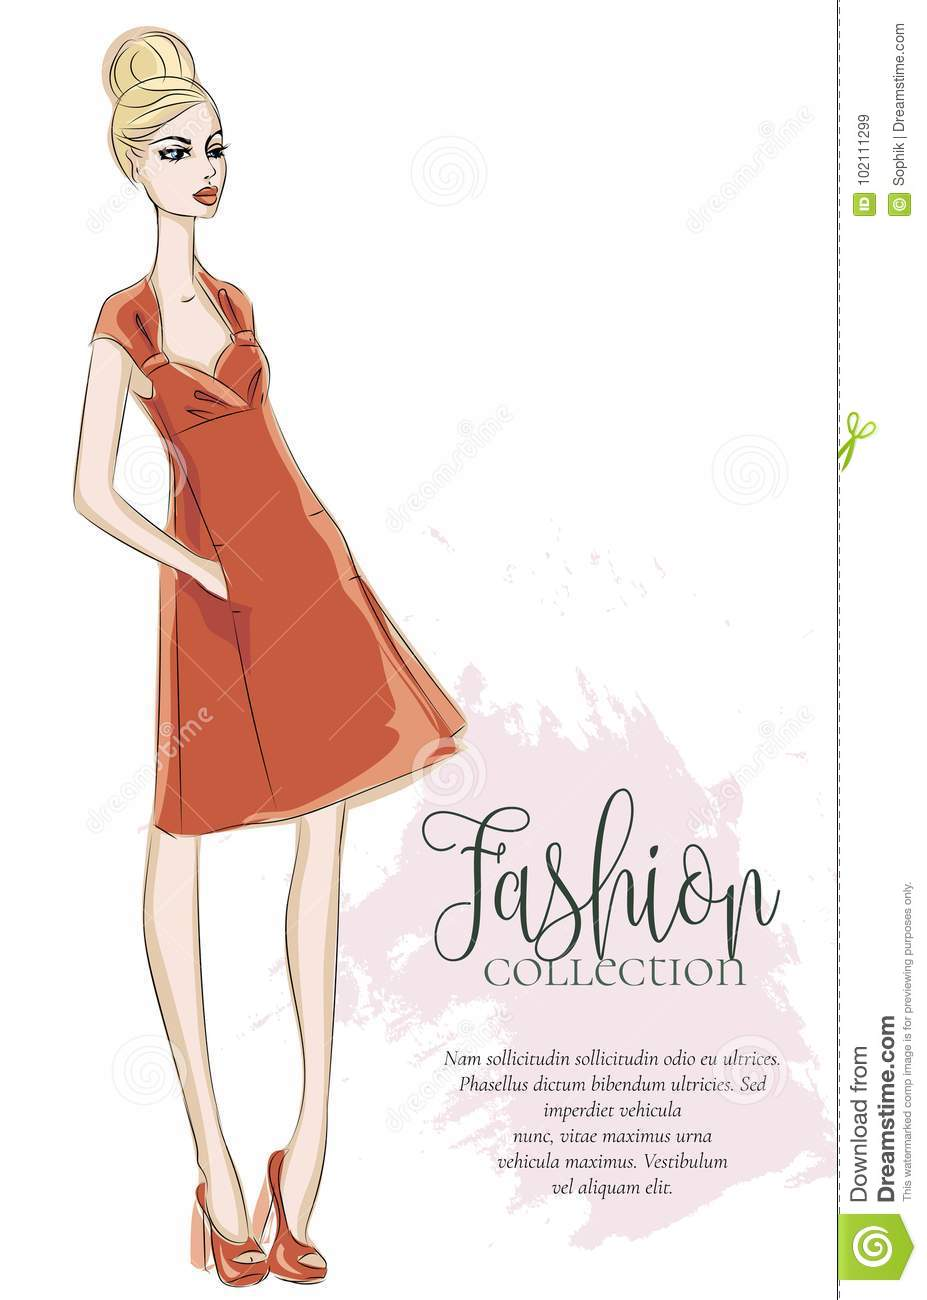 Fashion Collection Advertising Brochure With Trendy Girl In Sketch